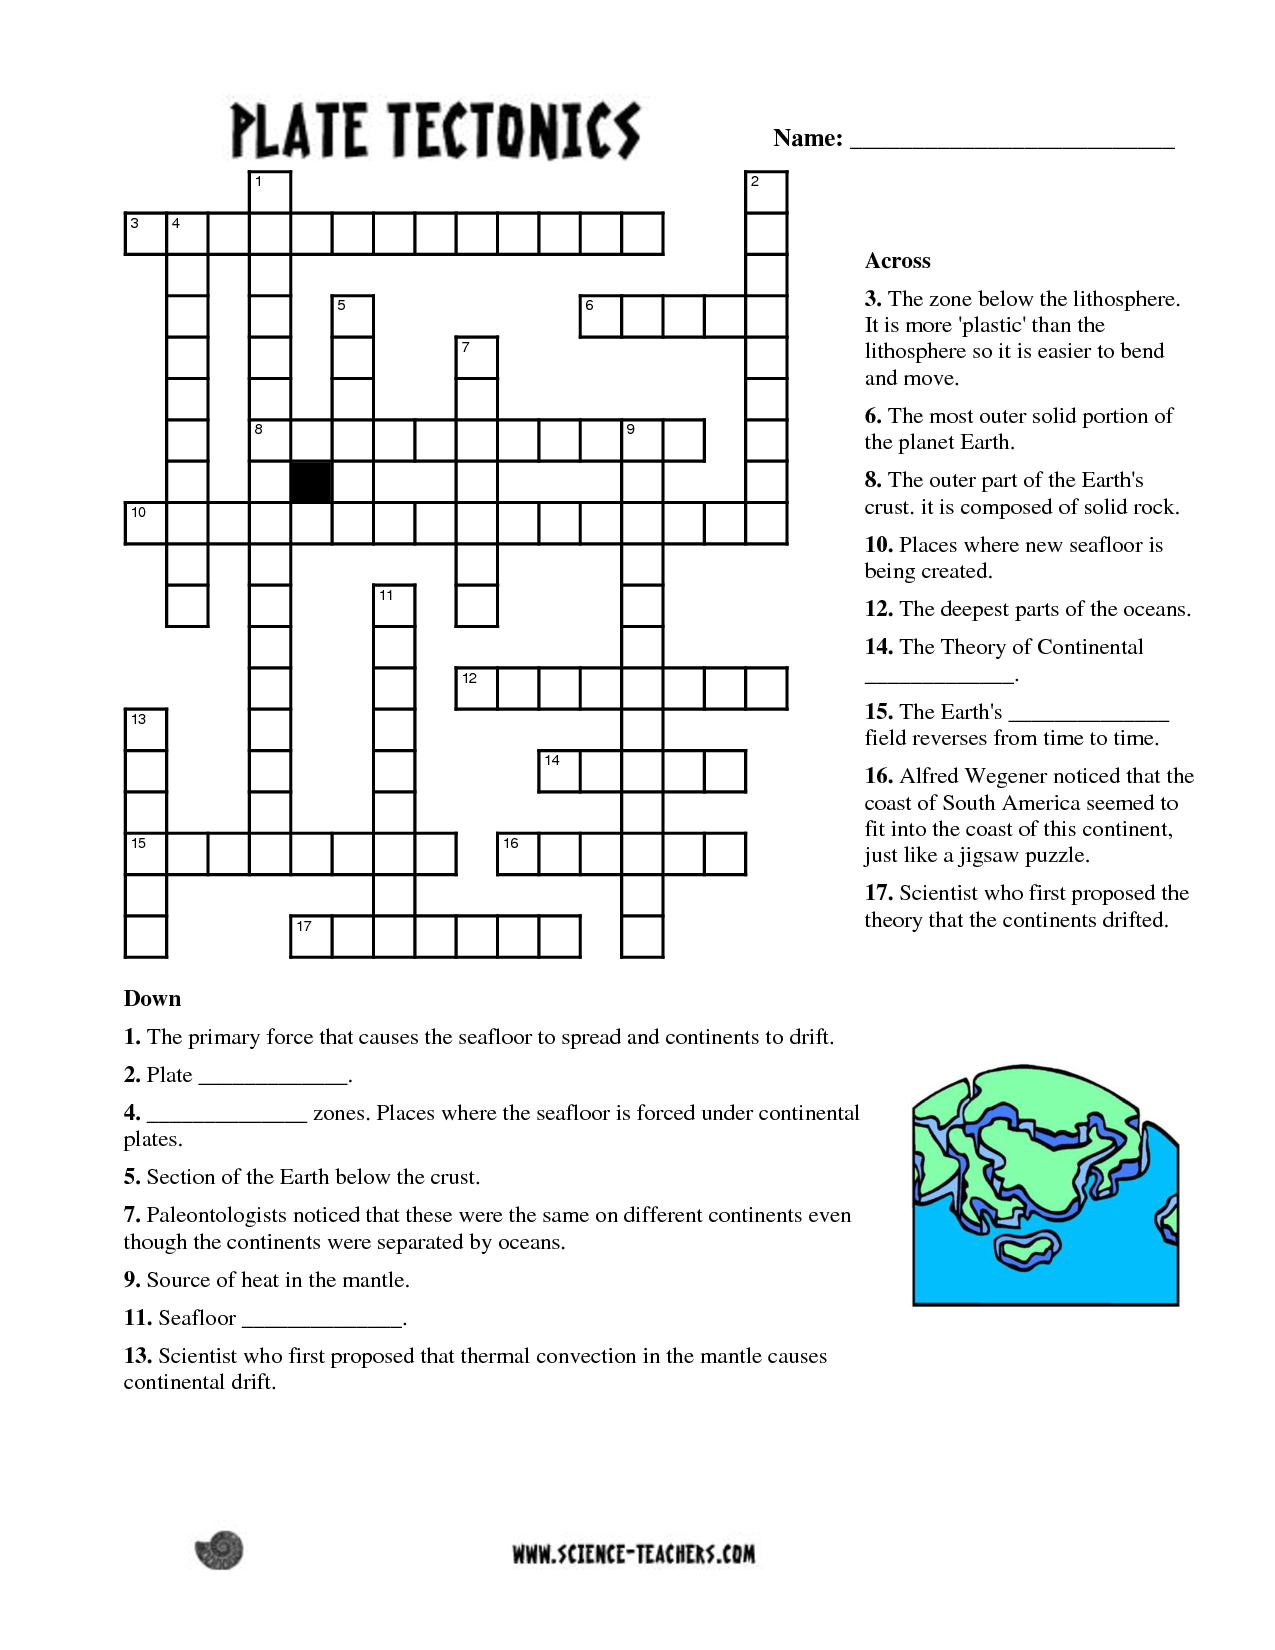 Planets Crossword Puzzle Worksheet - Pics About Space   Fun Science - Printable Puzzle South America